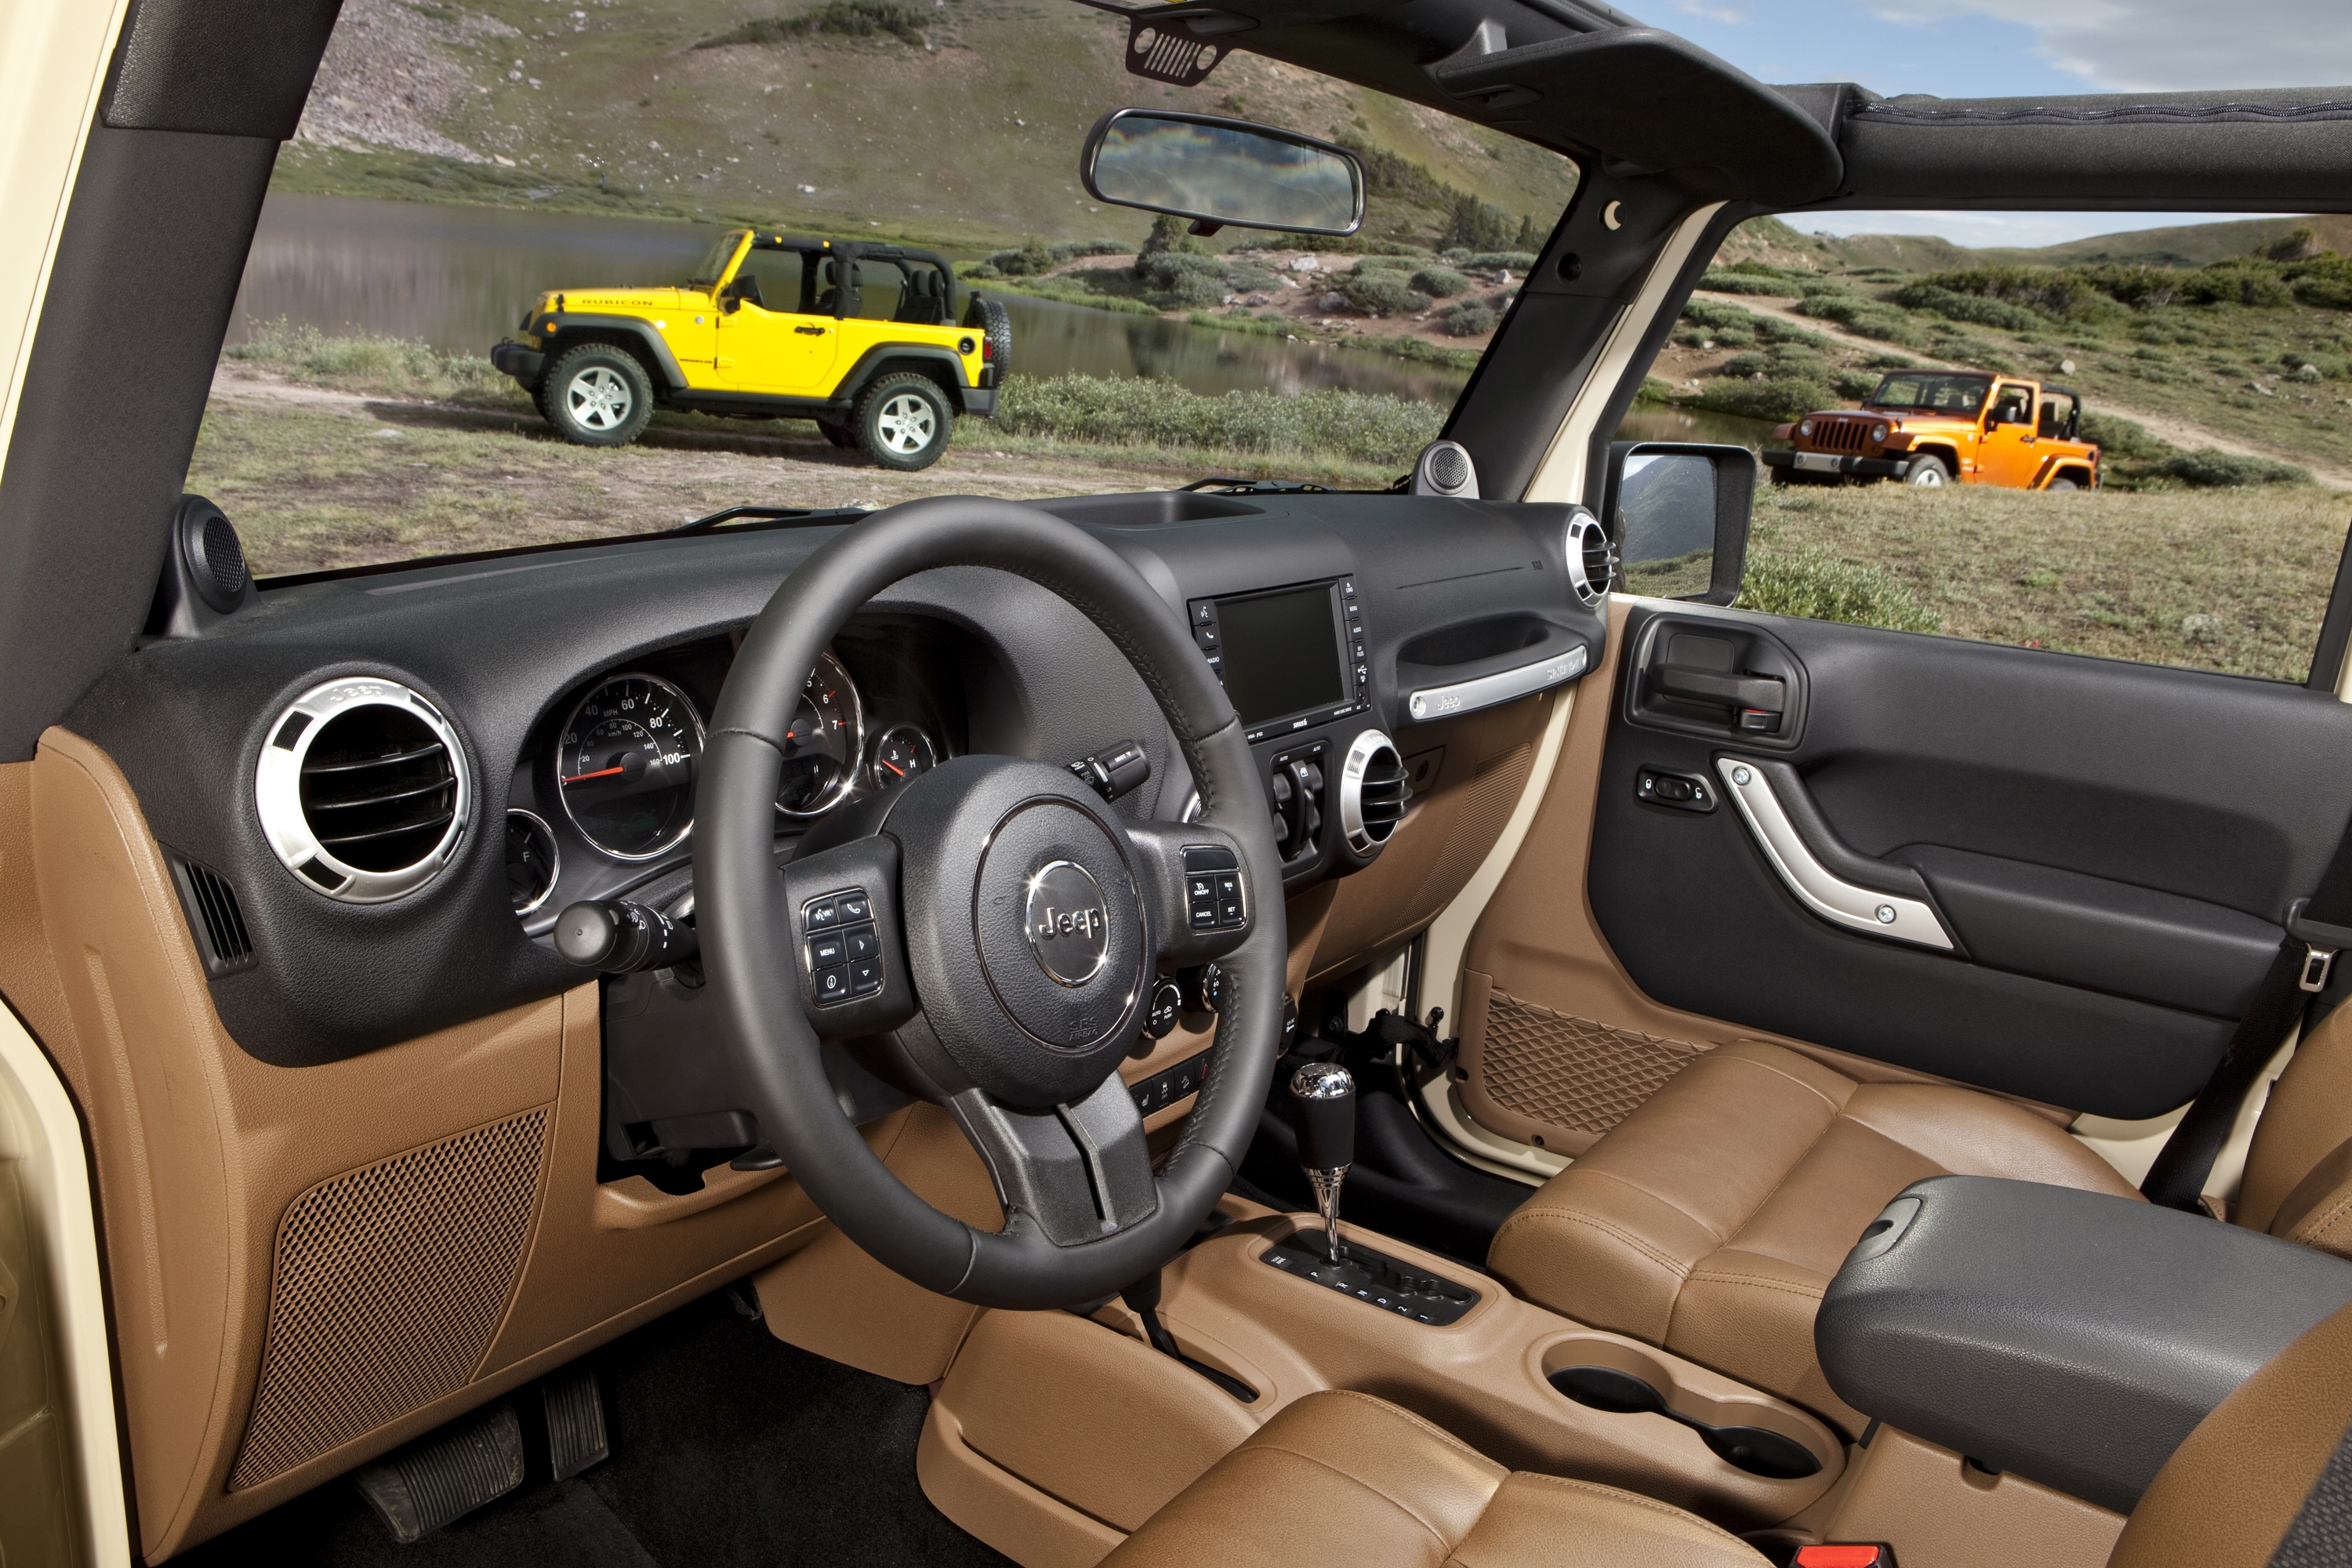 The astonishing 2011 jeep wrangler rubicon picture below, is segment of 2011 jeep wrangler pictures that looks